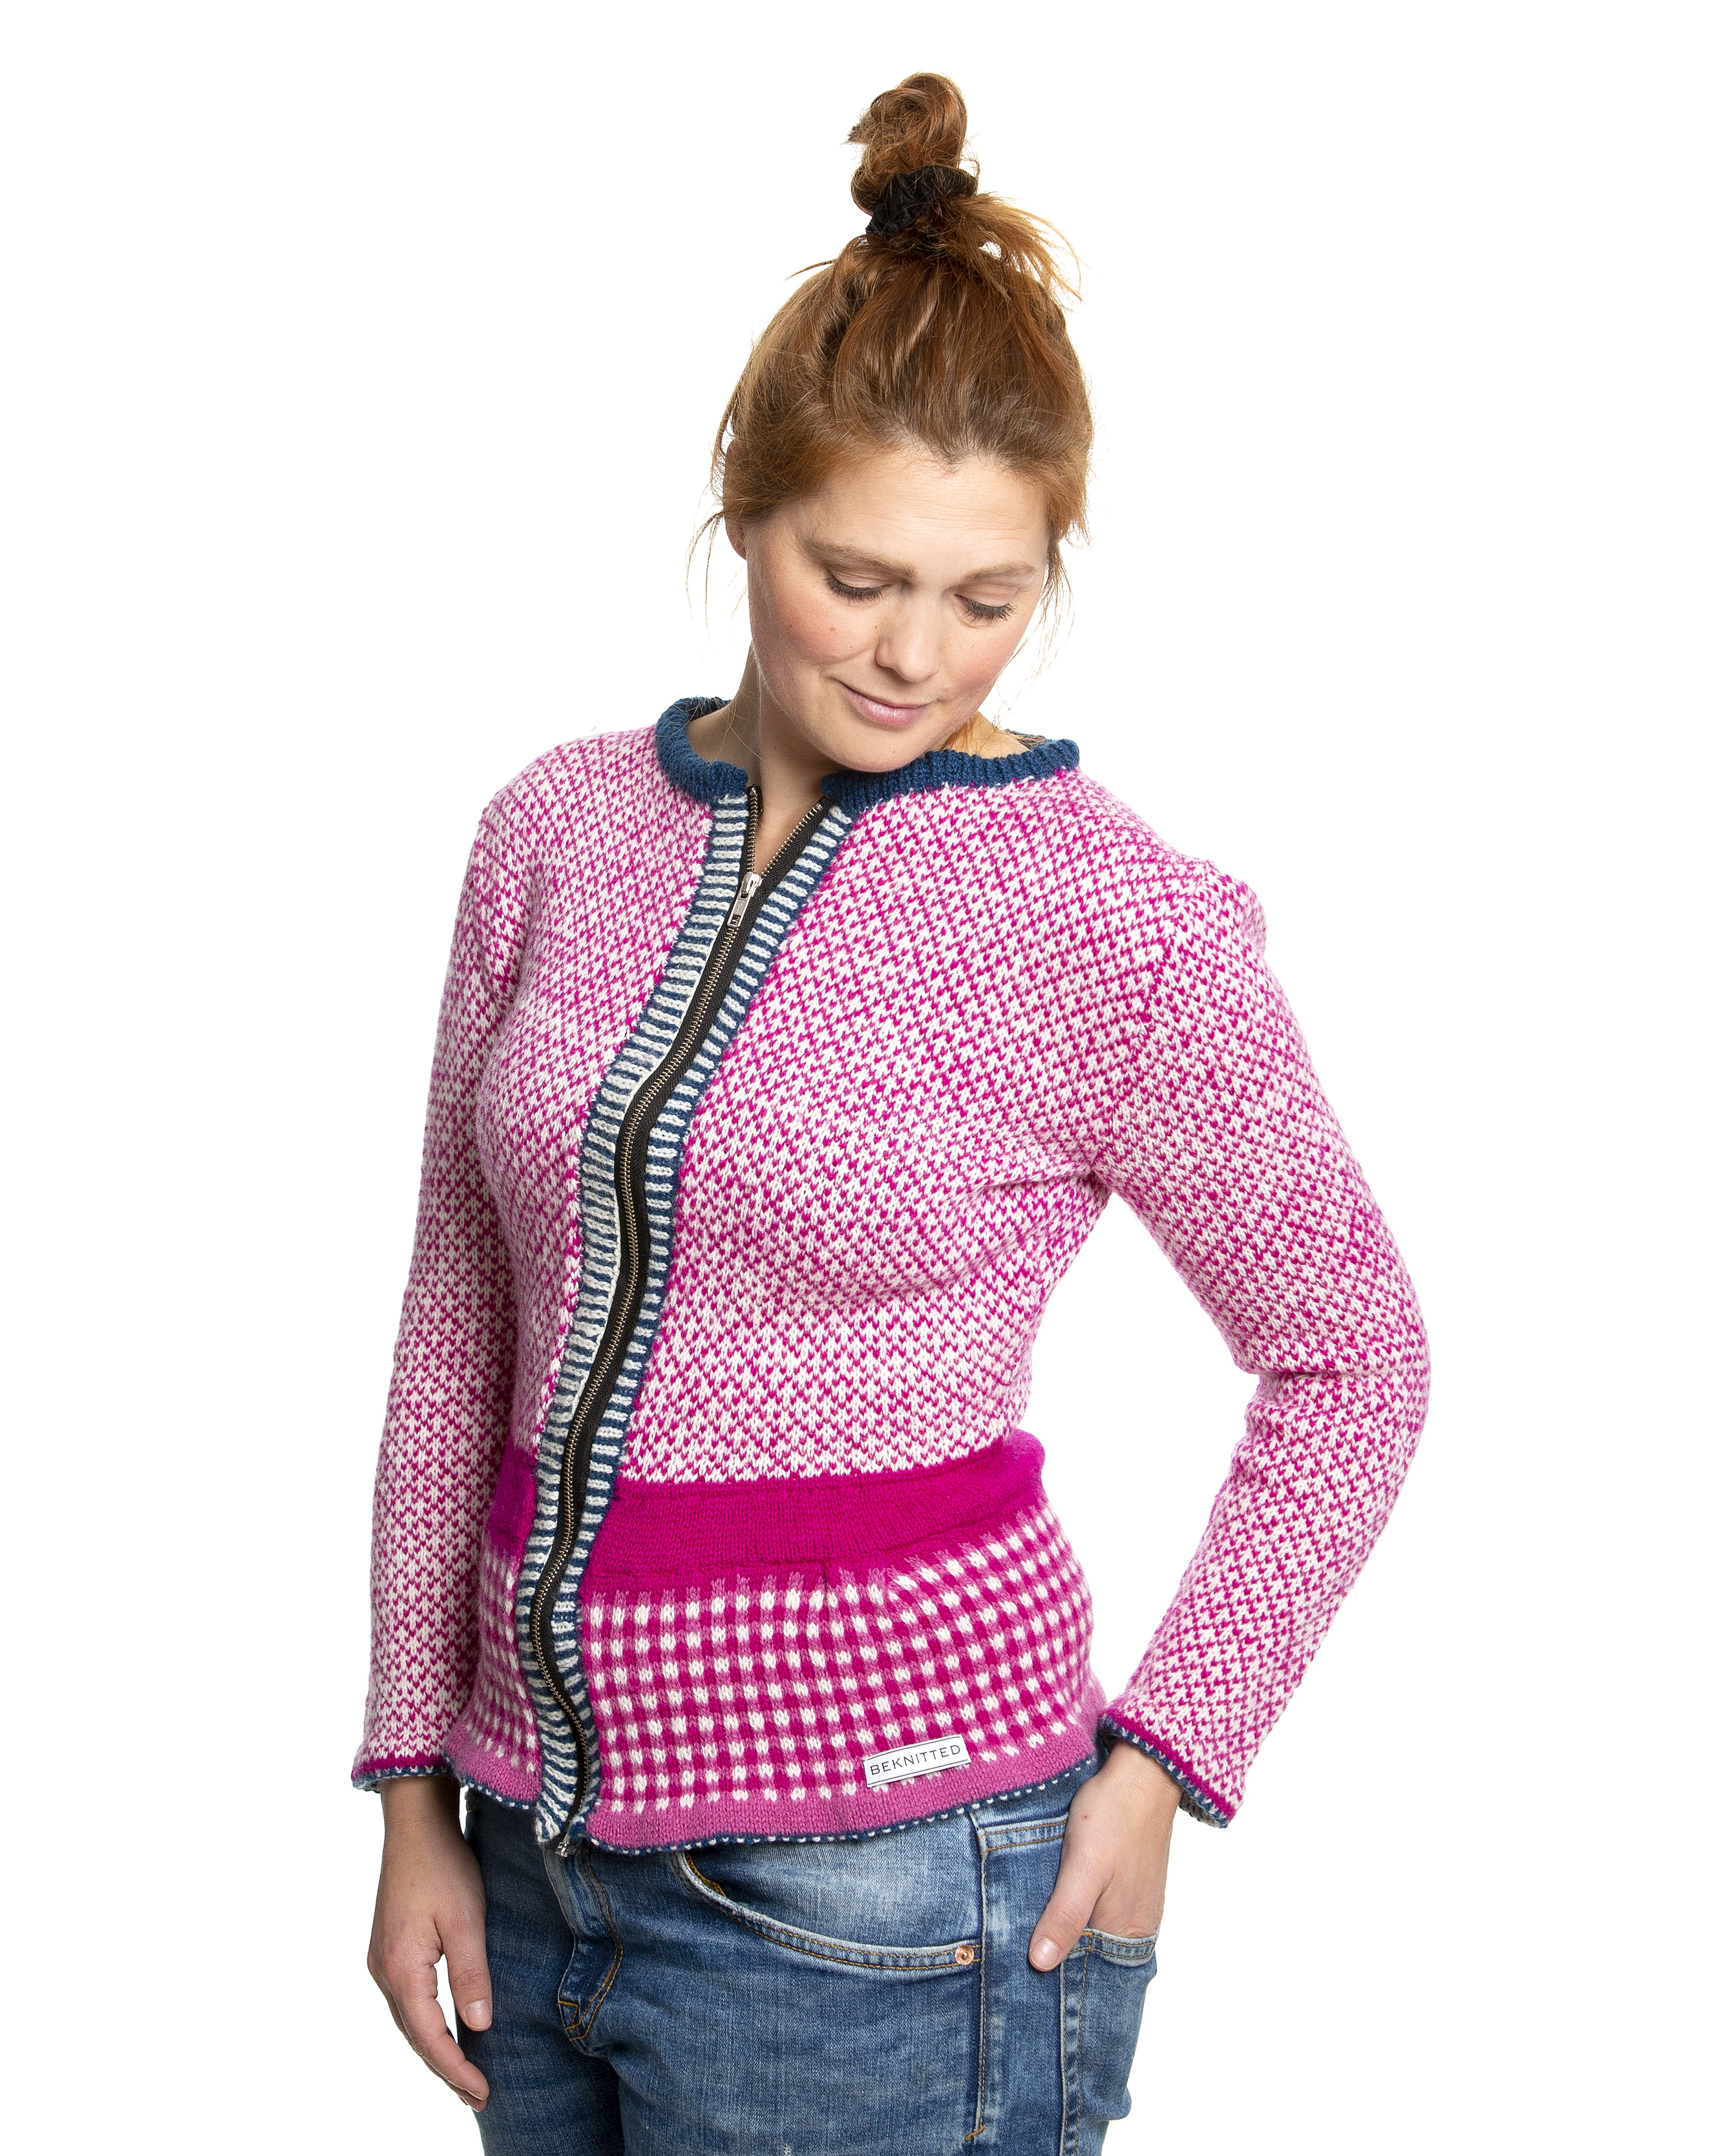 Knit Kit Stugustårsa Cardigan